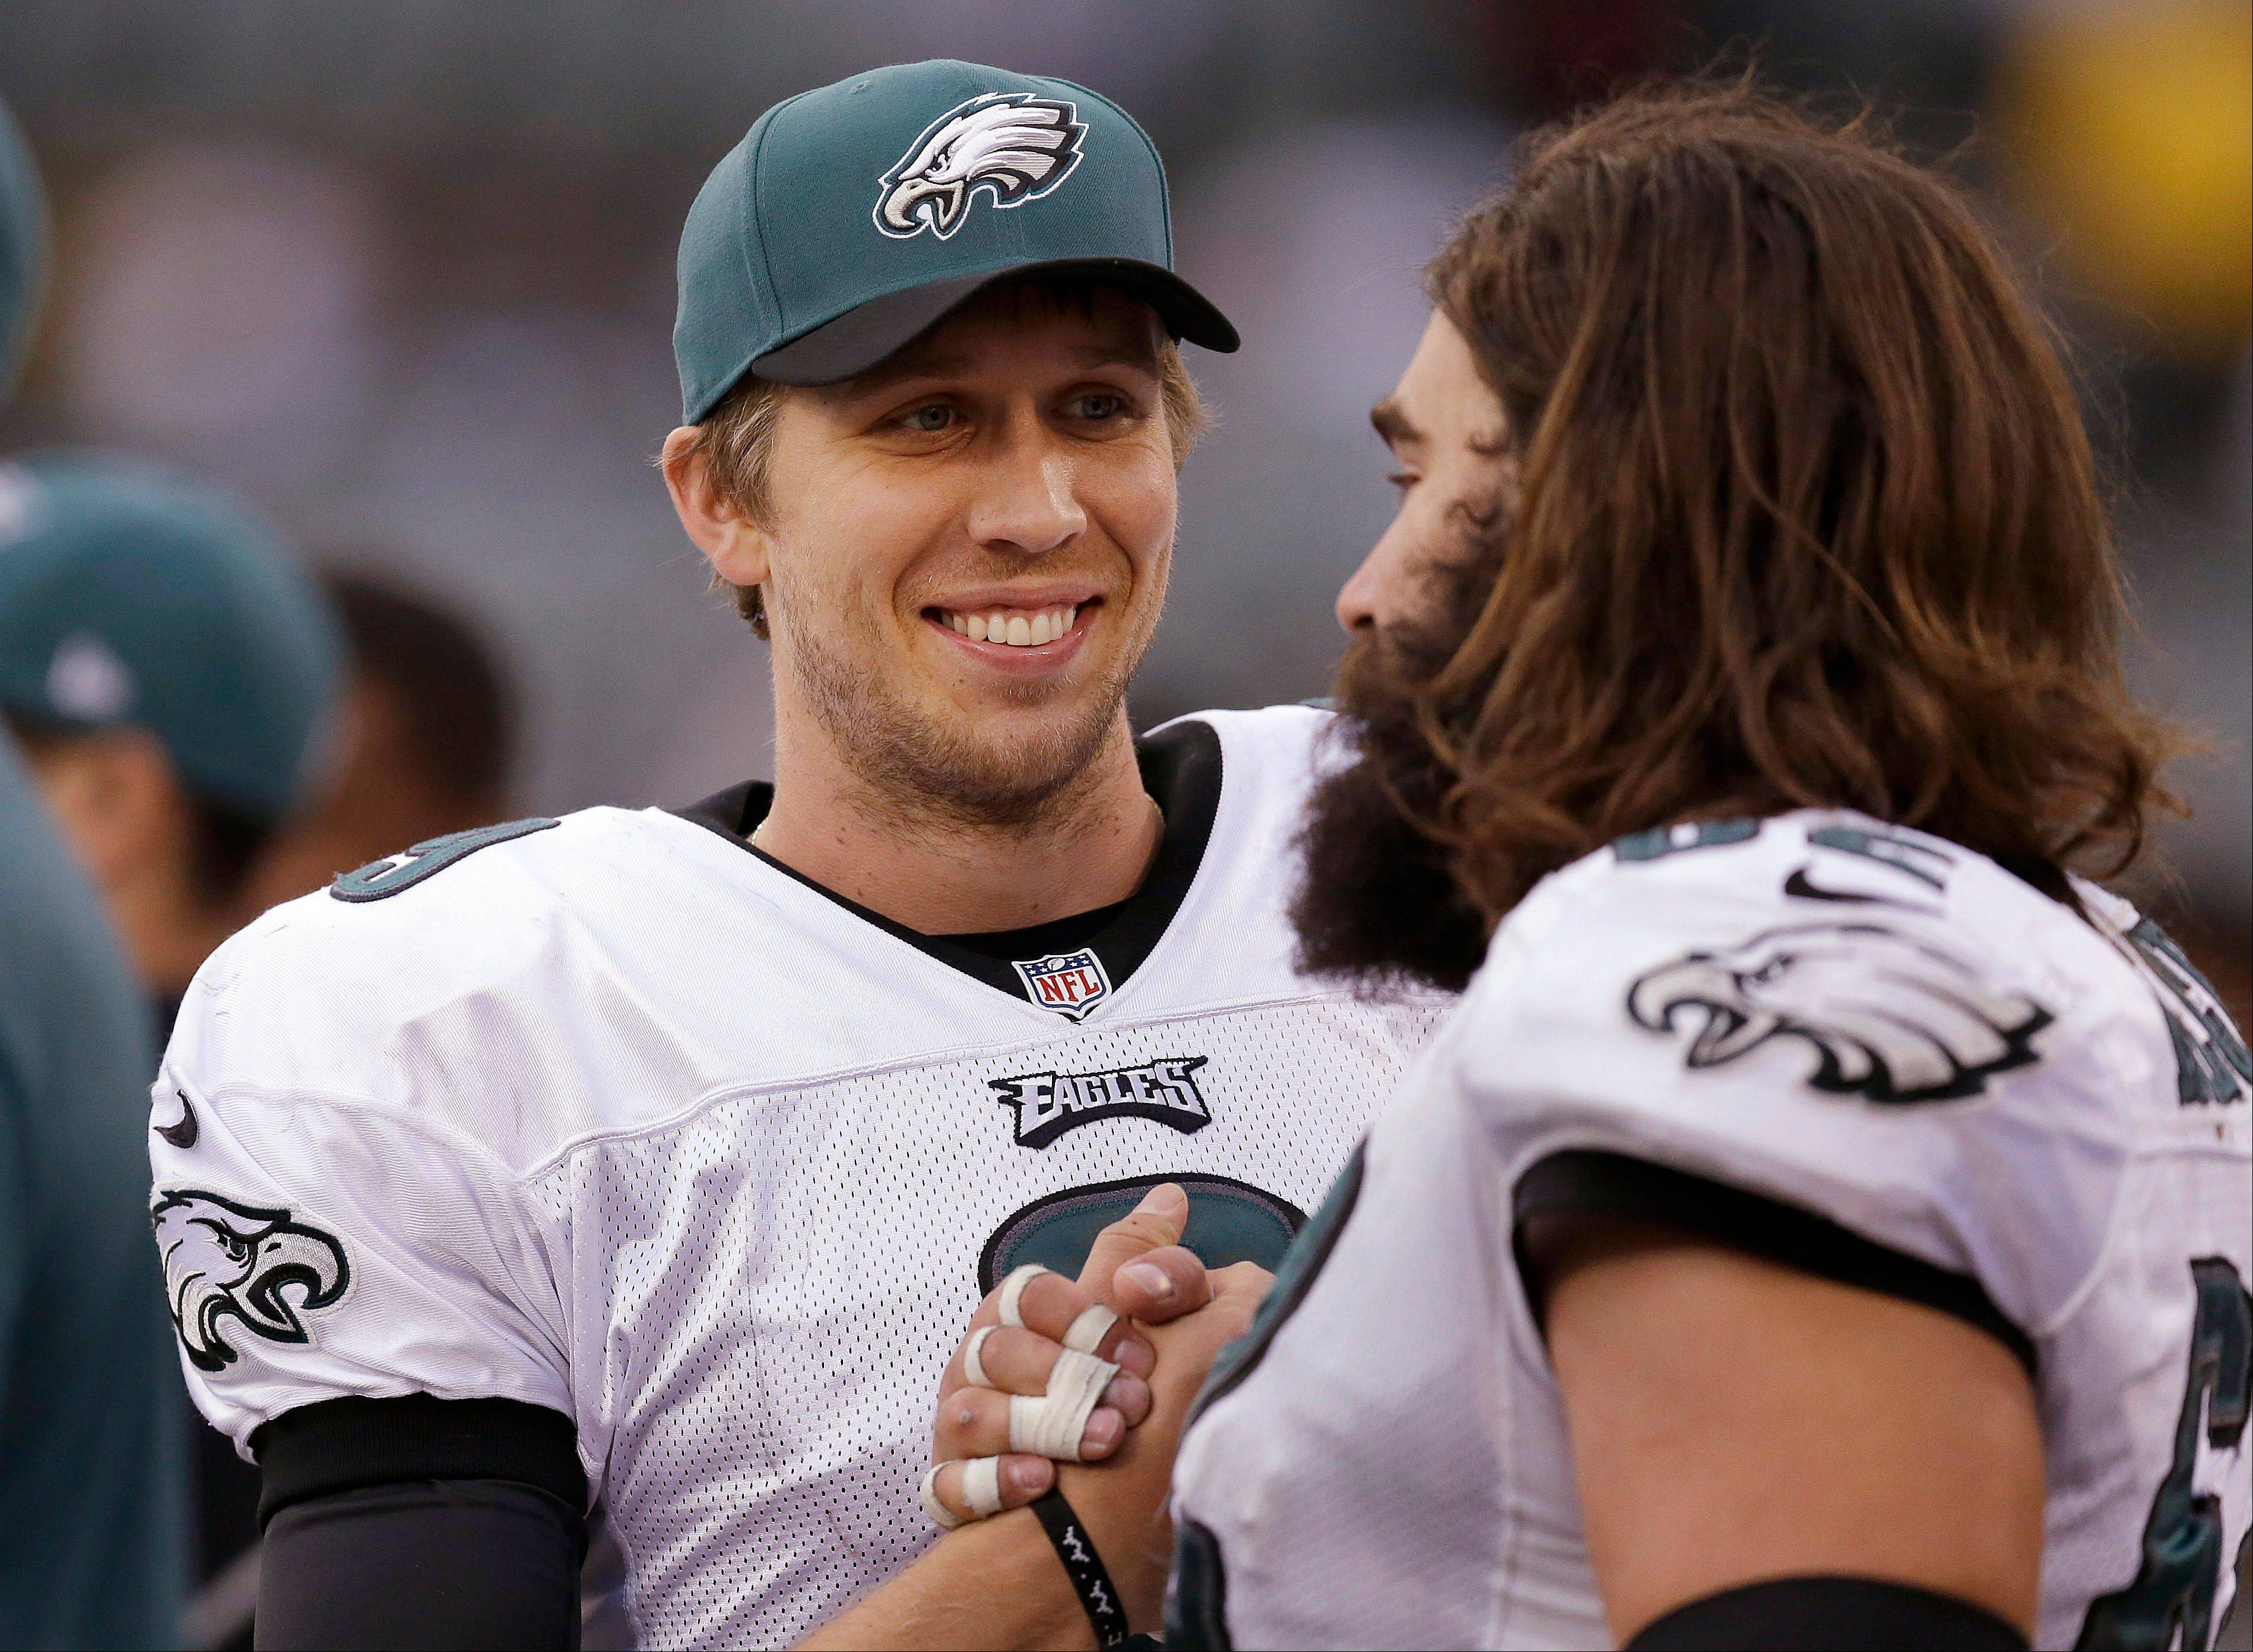 Philadelphia Eagles quarterback Nick Foles, left, smiles as he celebrates with center Jason Kelce during the fourth quarter of an NFL football game against the Oakland Raiders in Oakland, Calif., Sunday, Nov. 3, 2013. The Eagles won 49-20.